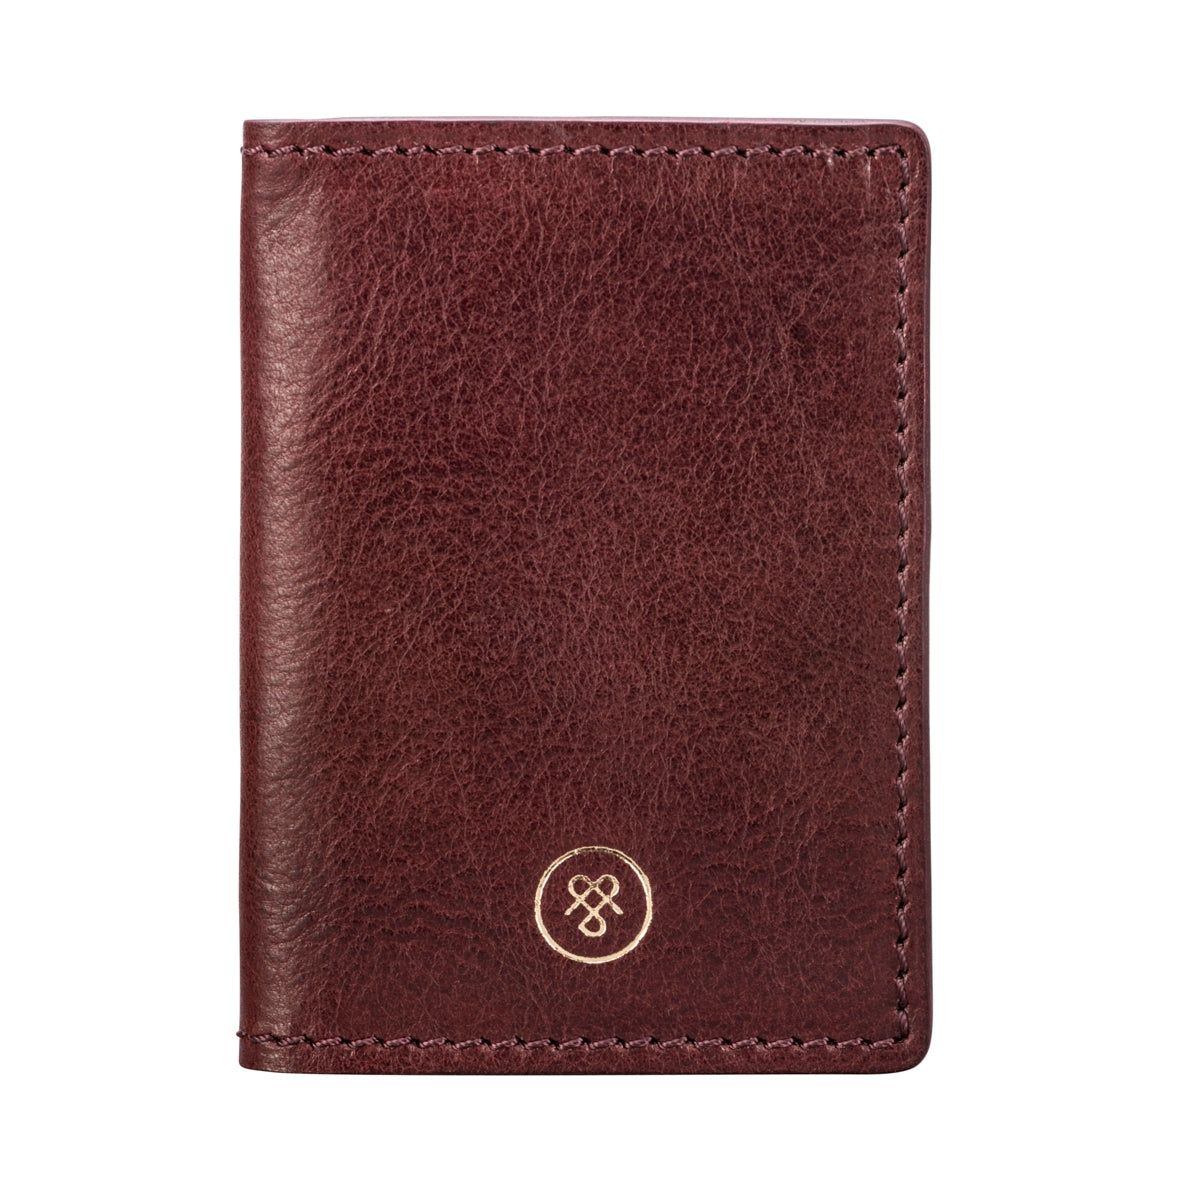 Image 1 of the 'Vallata' Wine Leather Oyster Card Holder